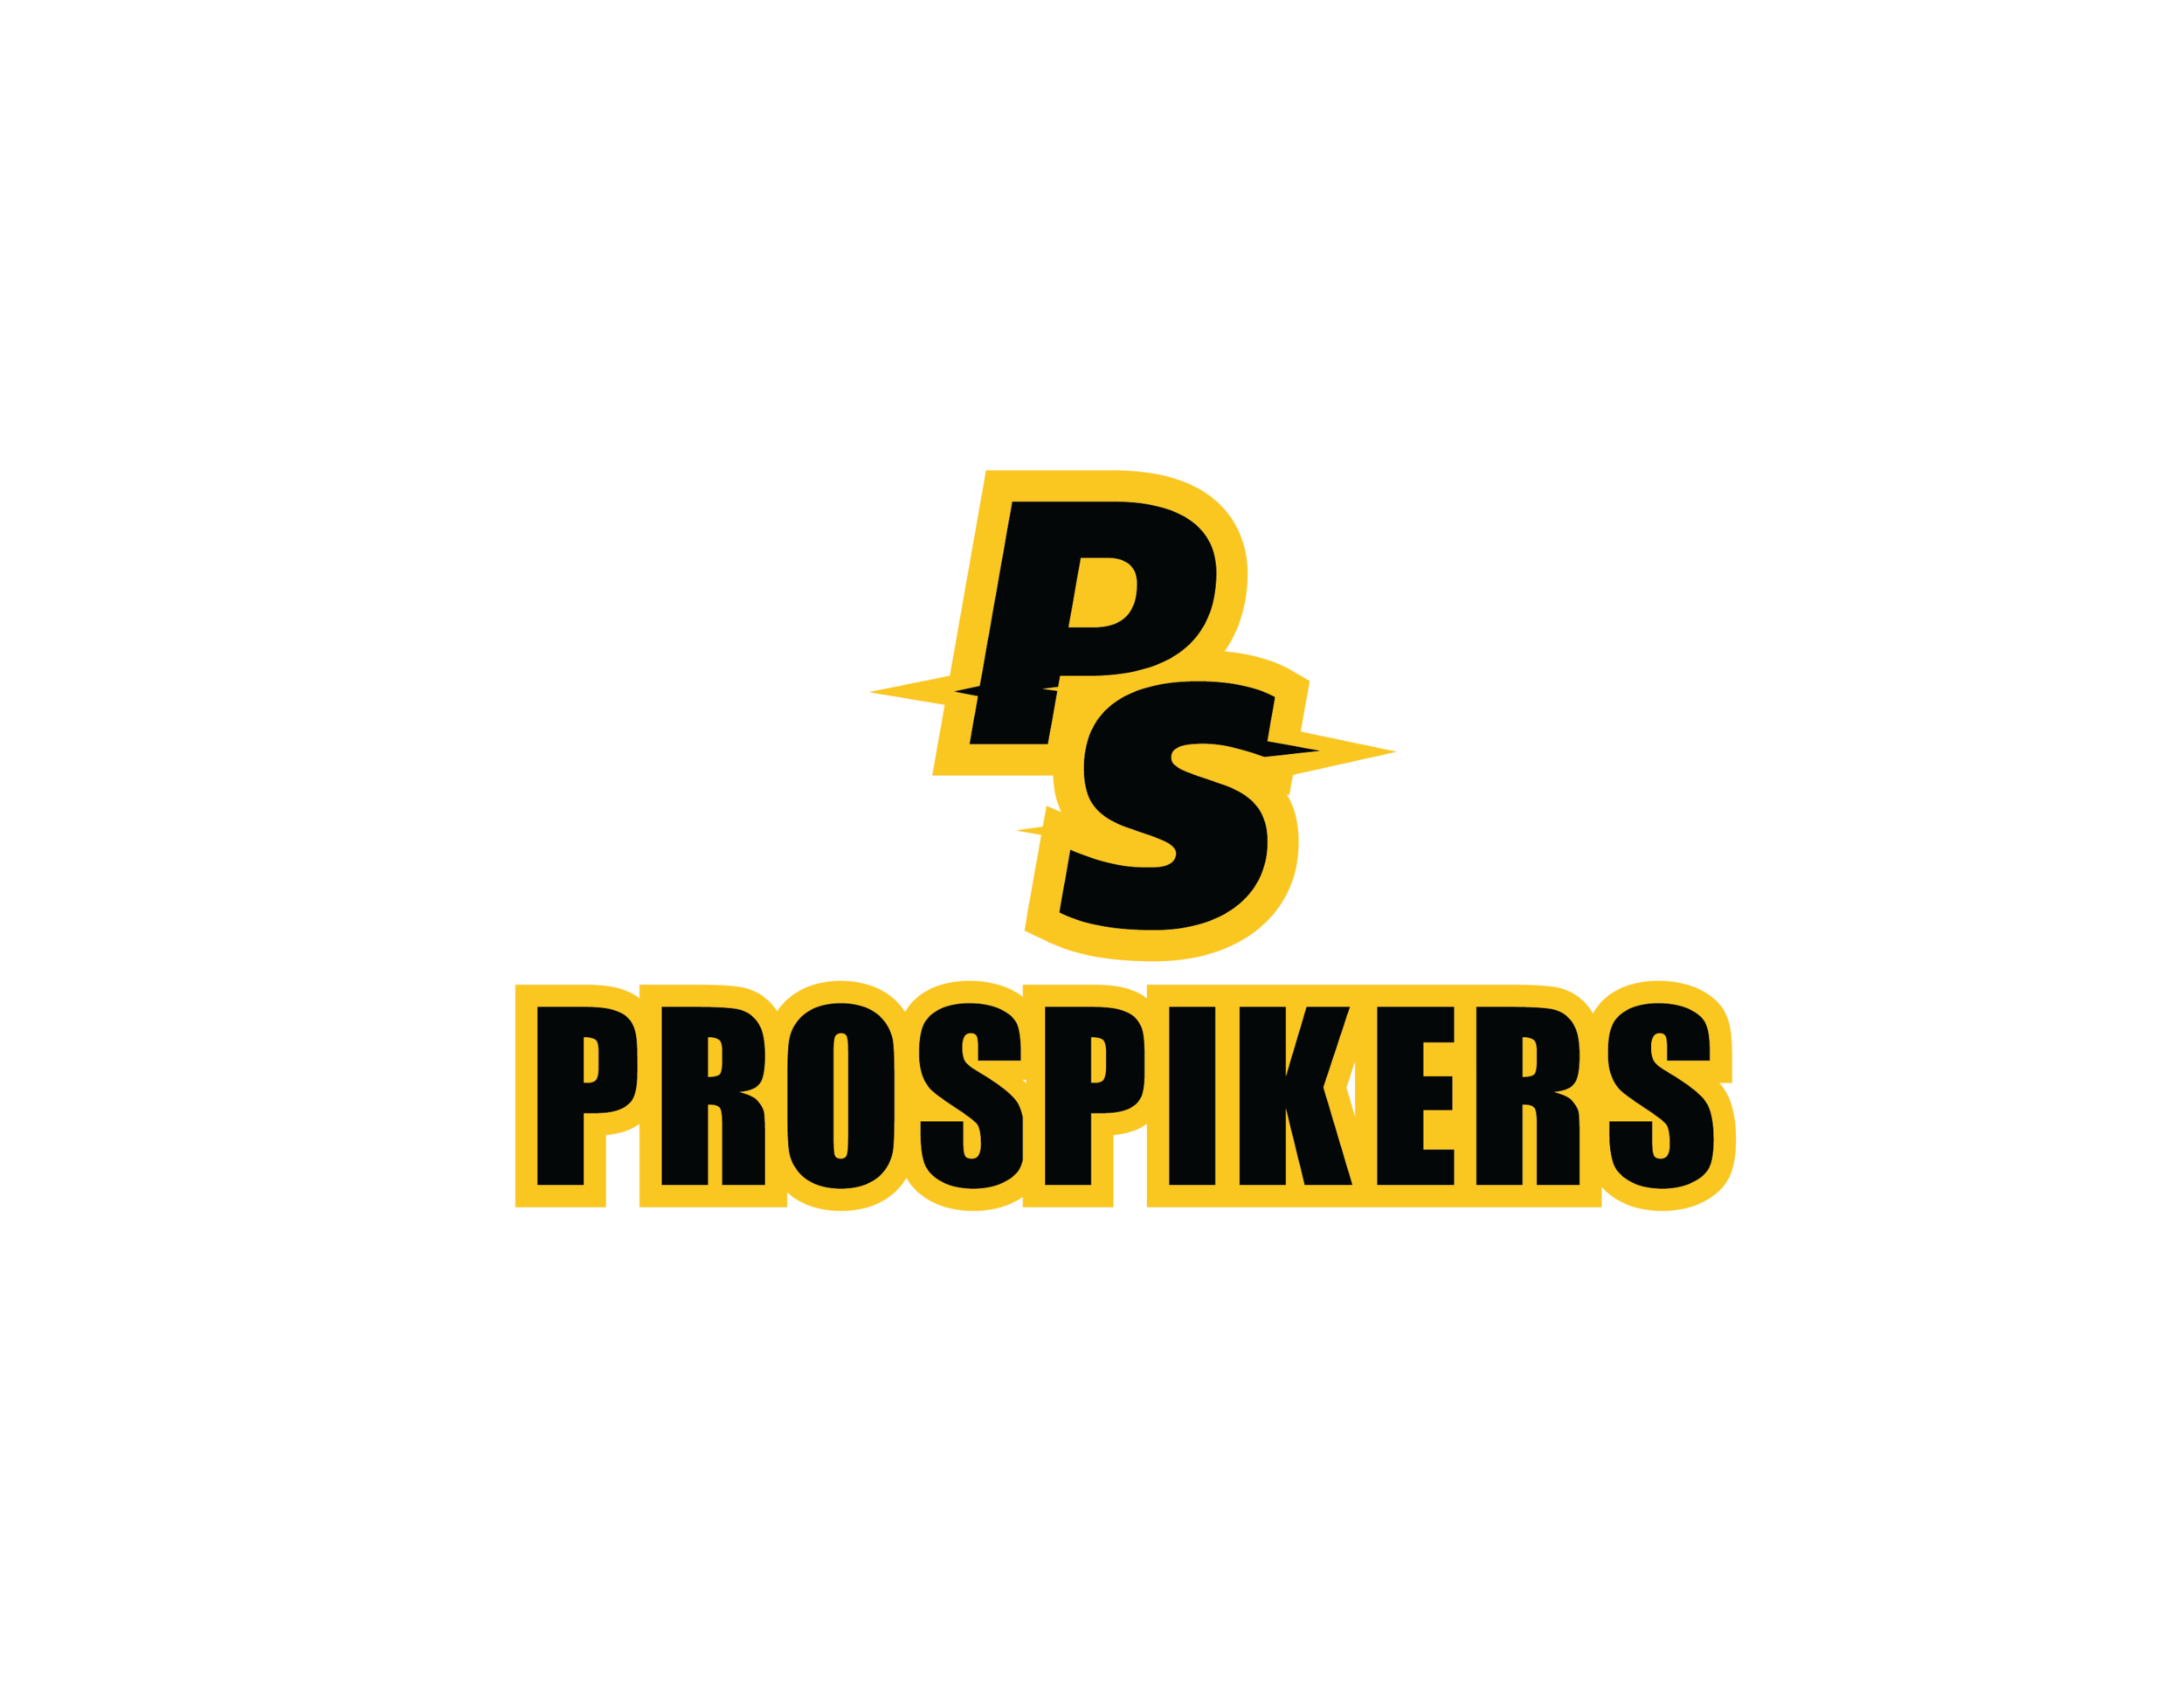 ProSpikers-logo_blk-y-w-stacked.png